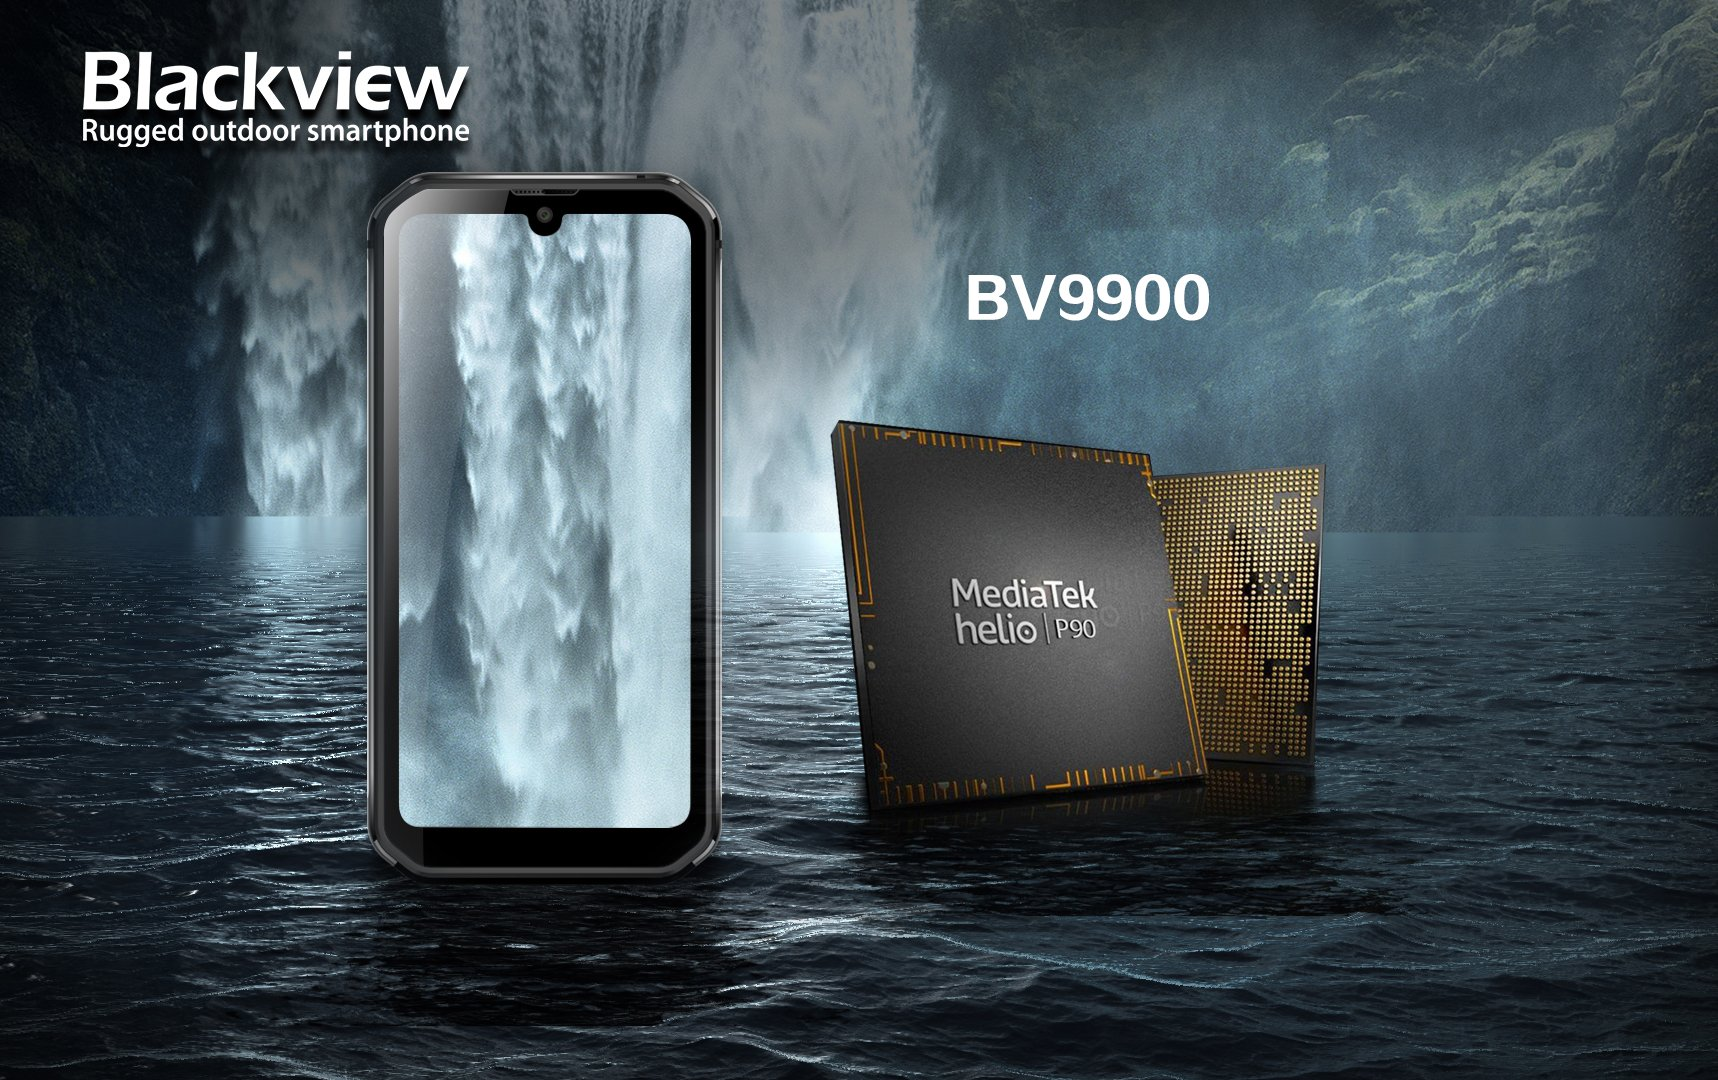 Blackview BV9900